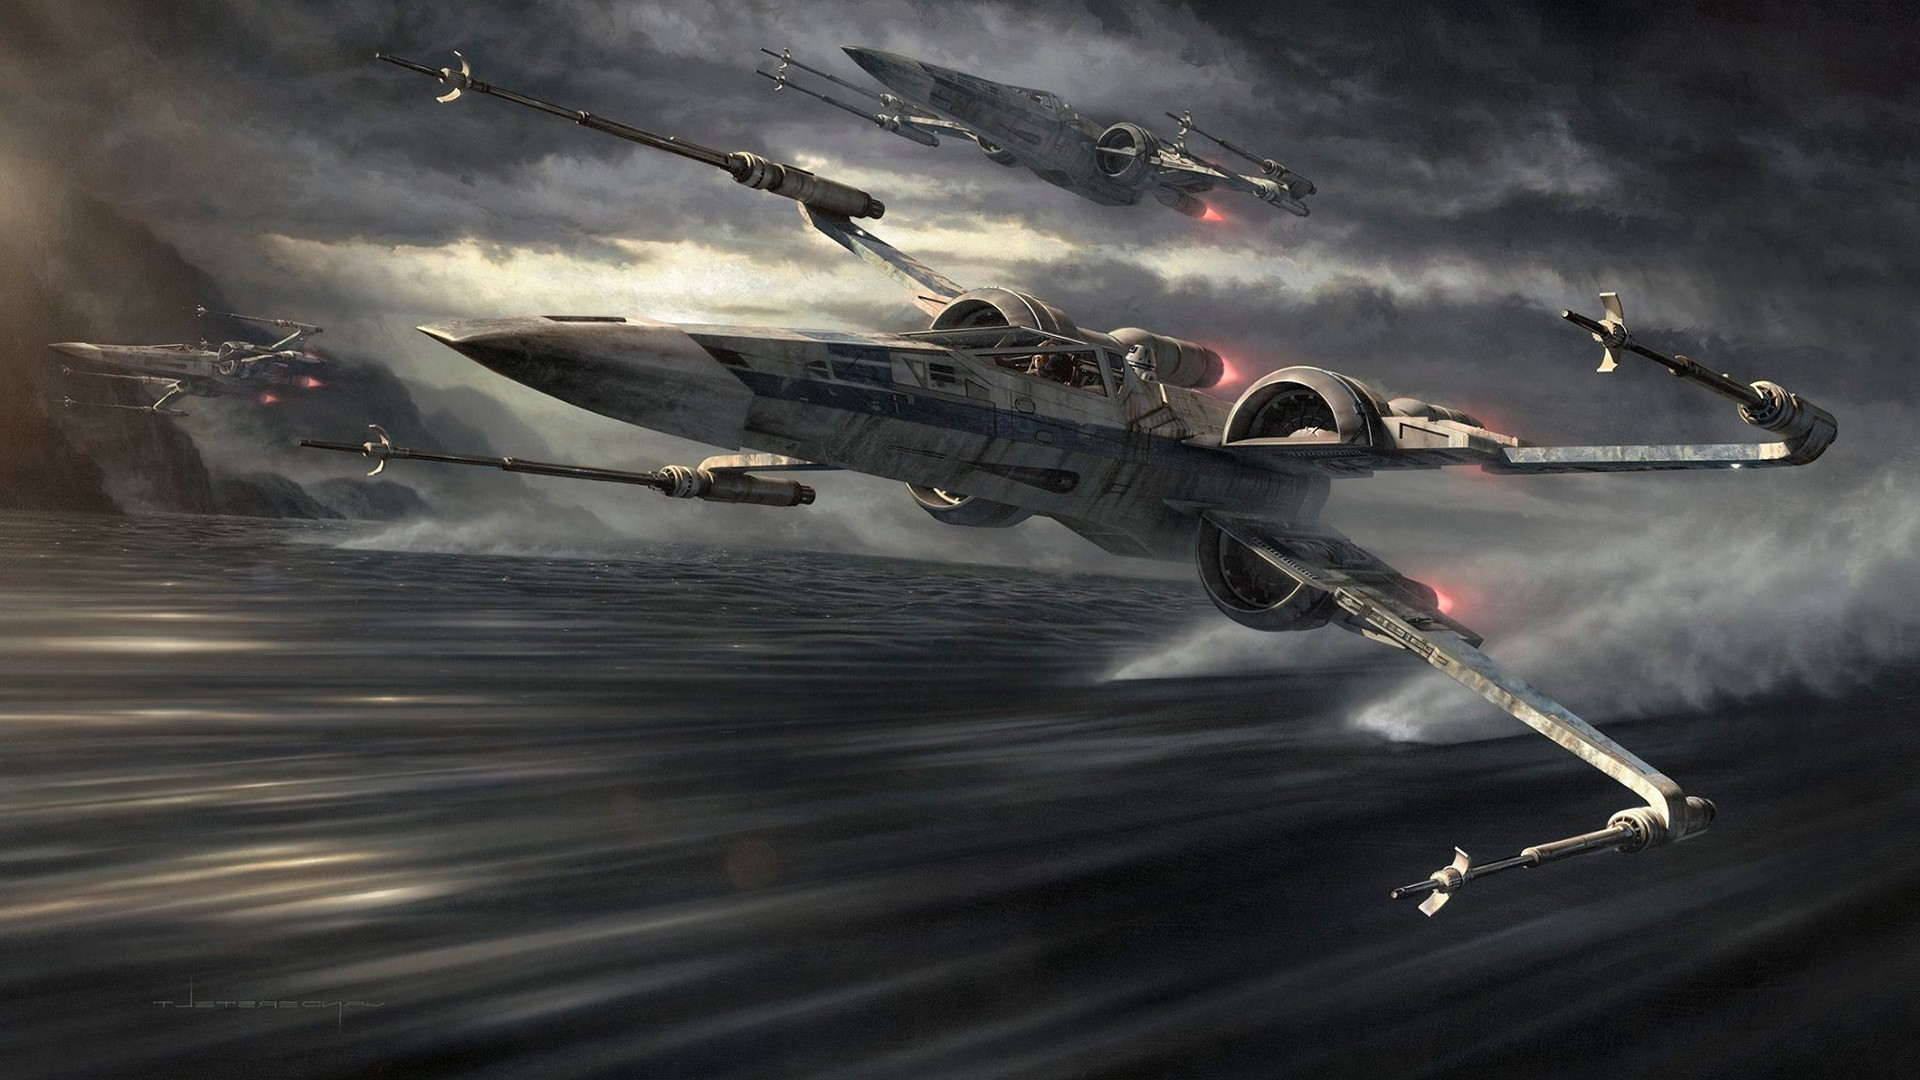 Girls 4k Wallpaper X Wing Star Wars Wallpapers Hd Desktop And Mobile